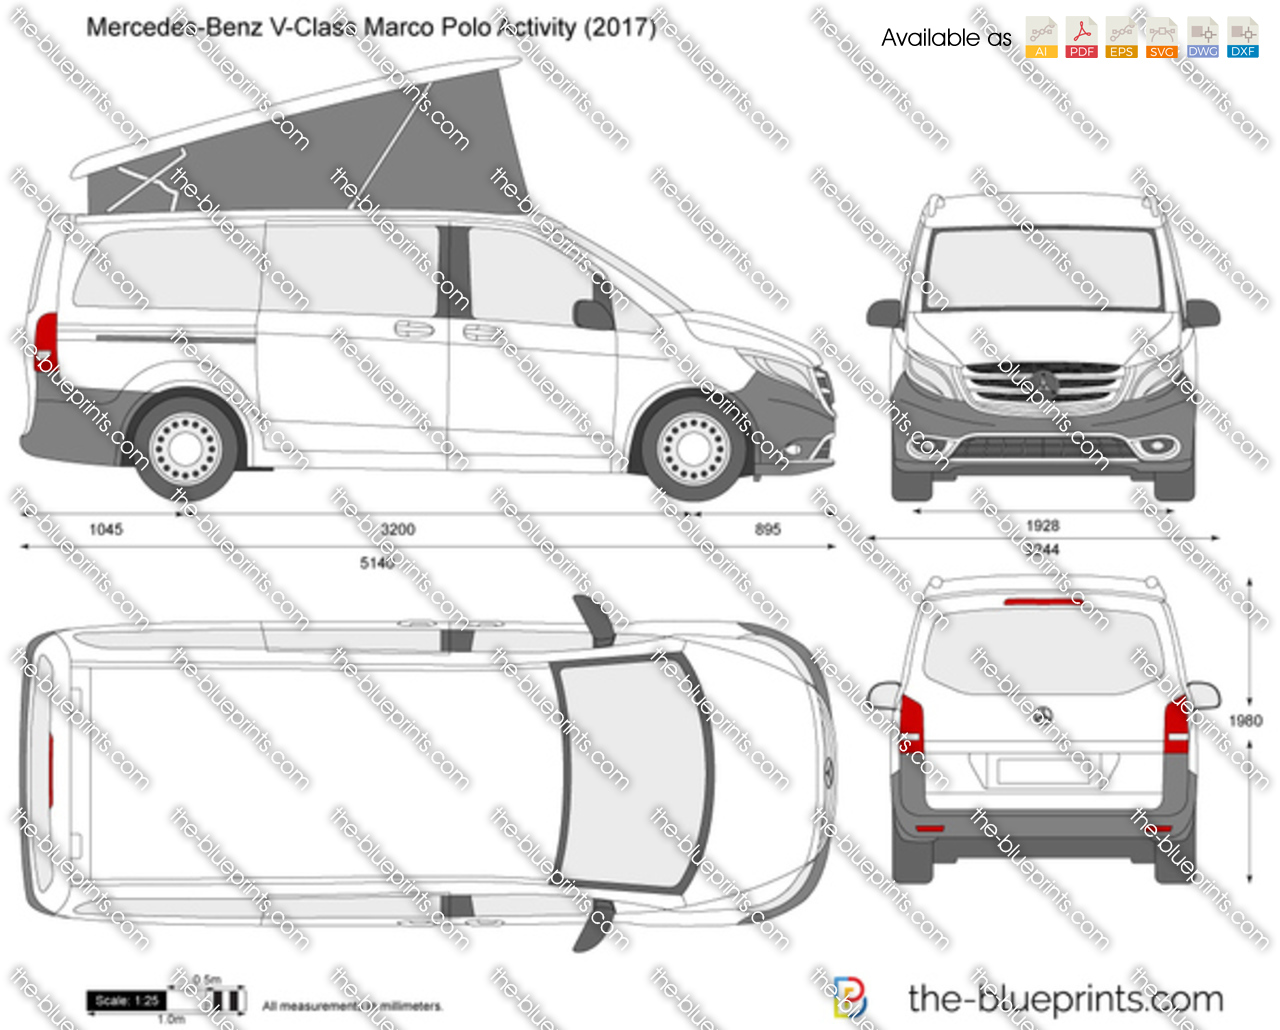 Mercedes-Benz V-Class Marco Polo Activity